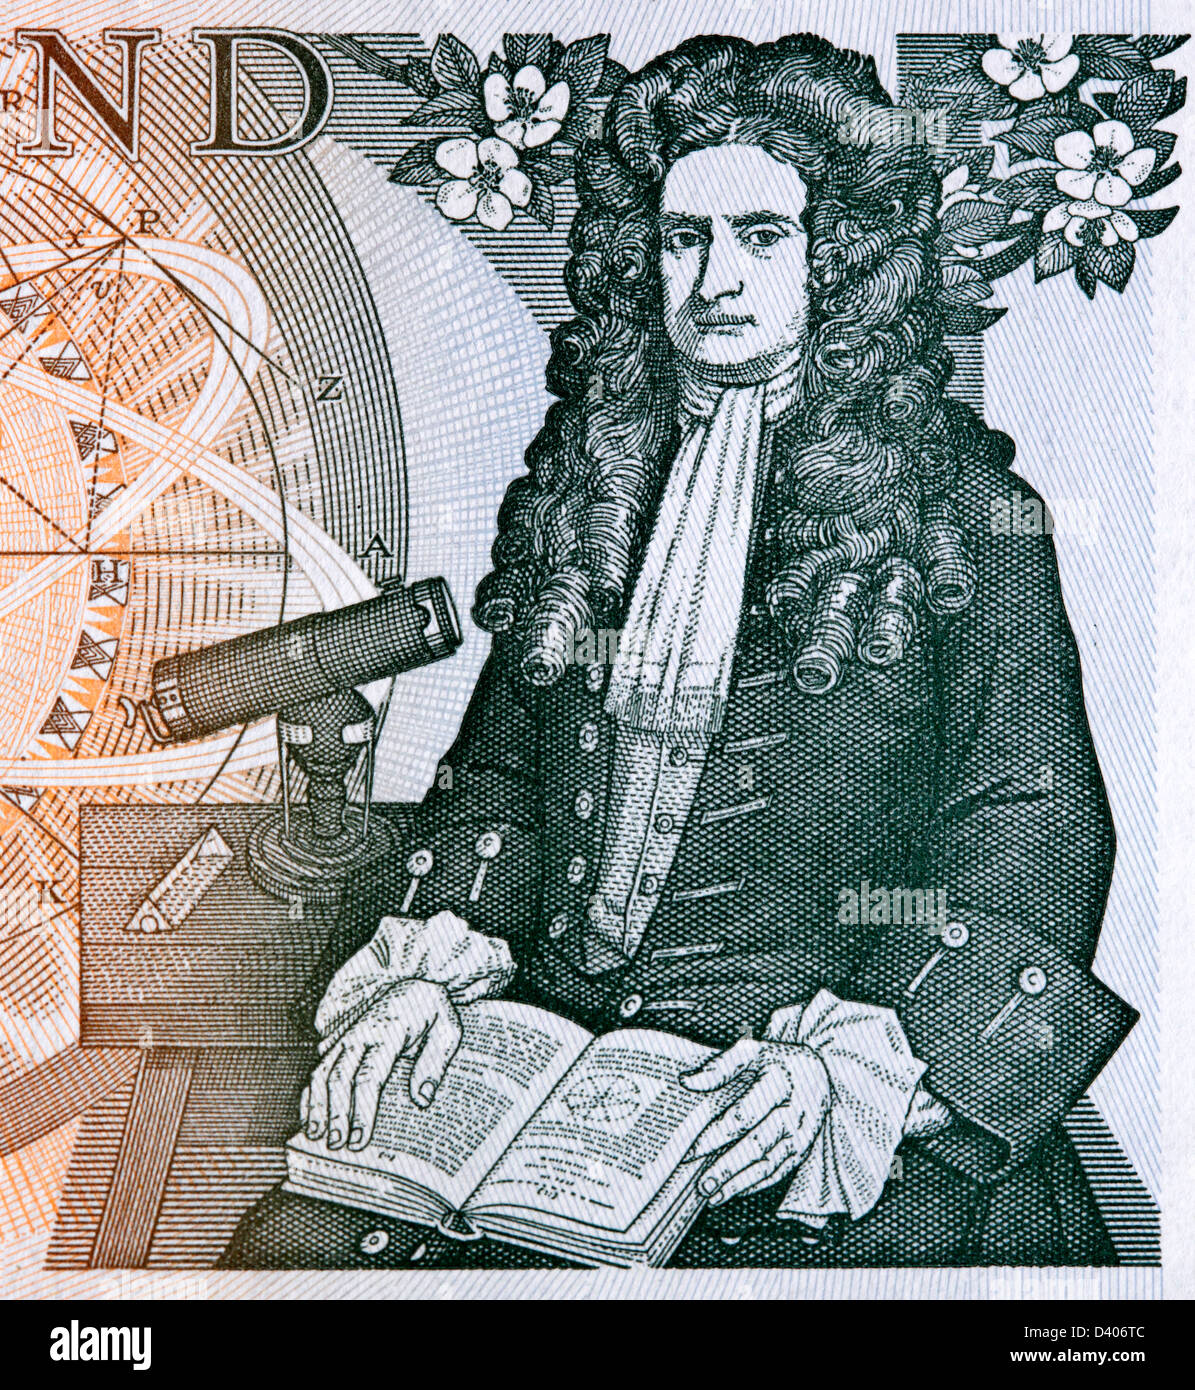 Portrait of Sir Isaac Newton from 1 Pound banknote, UK, 1978 Stock Photo